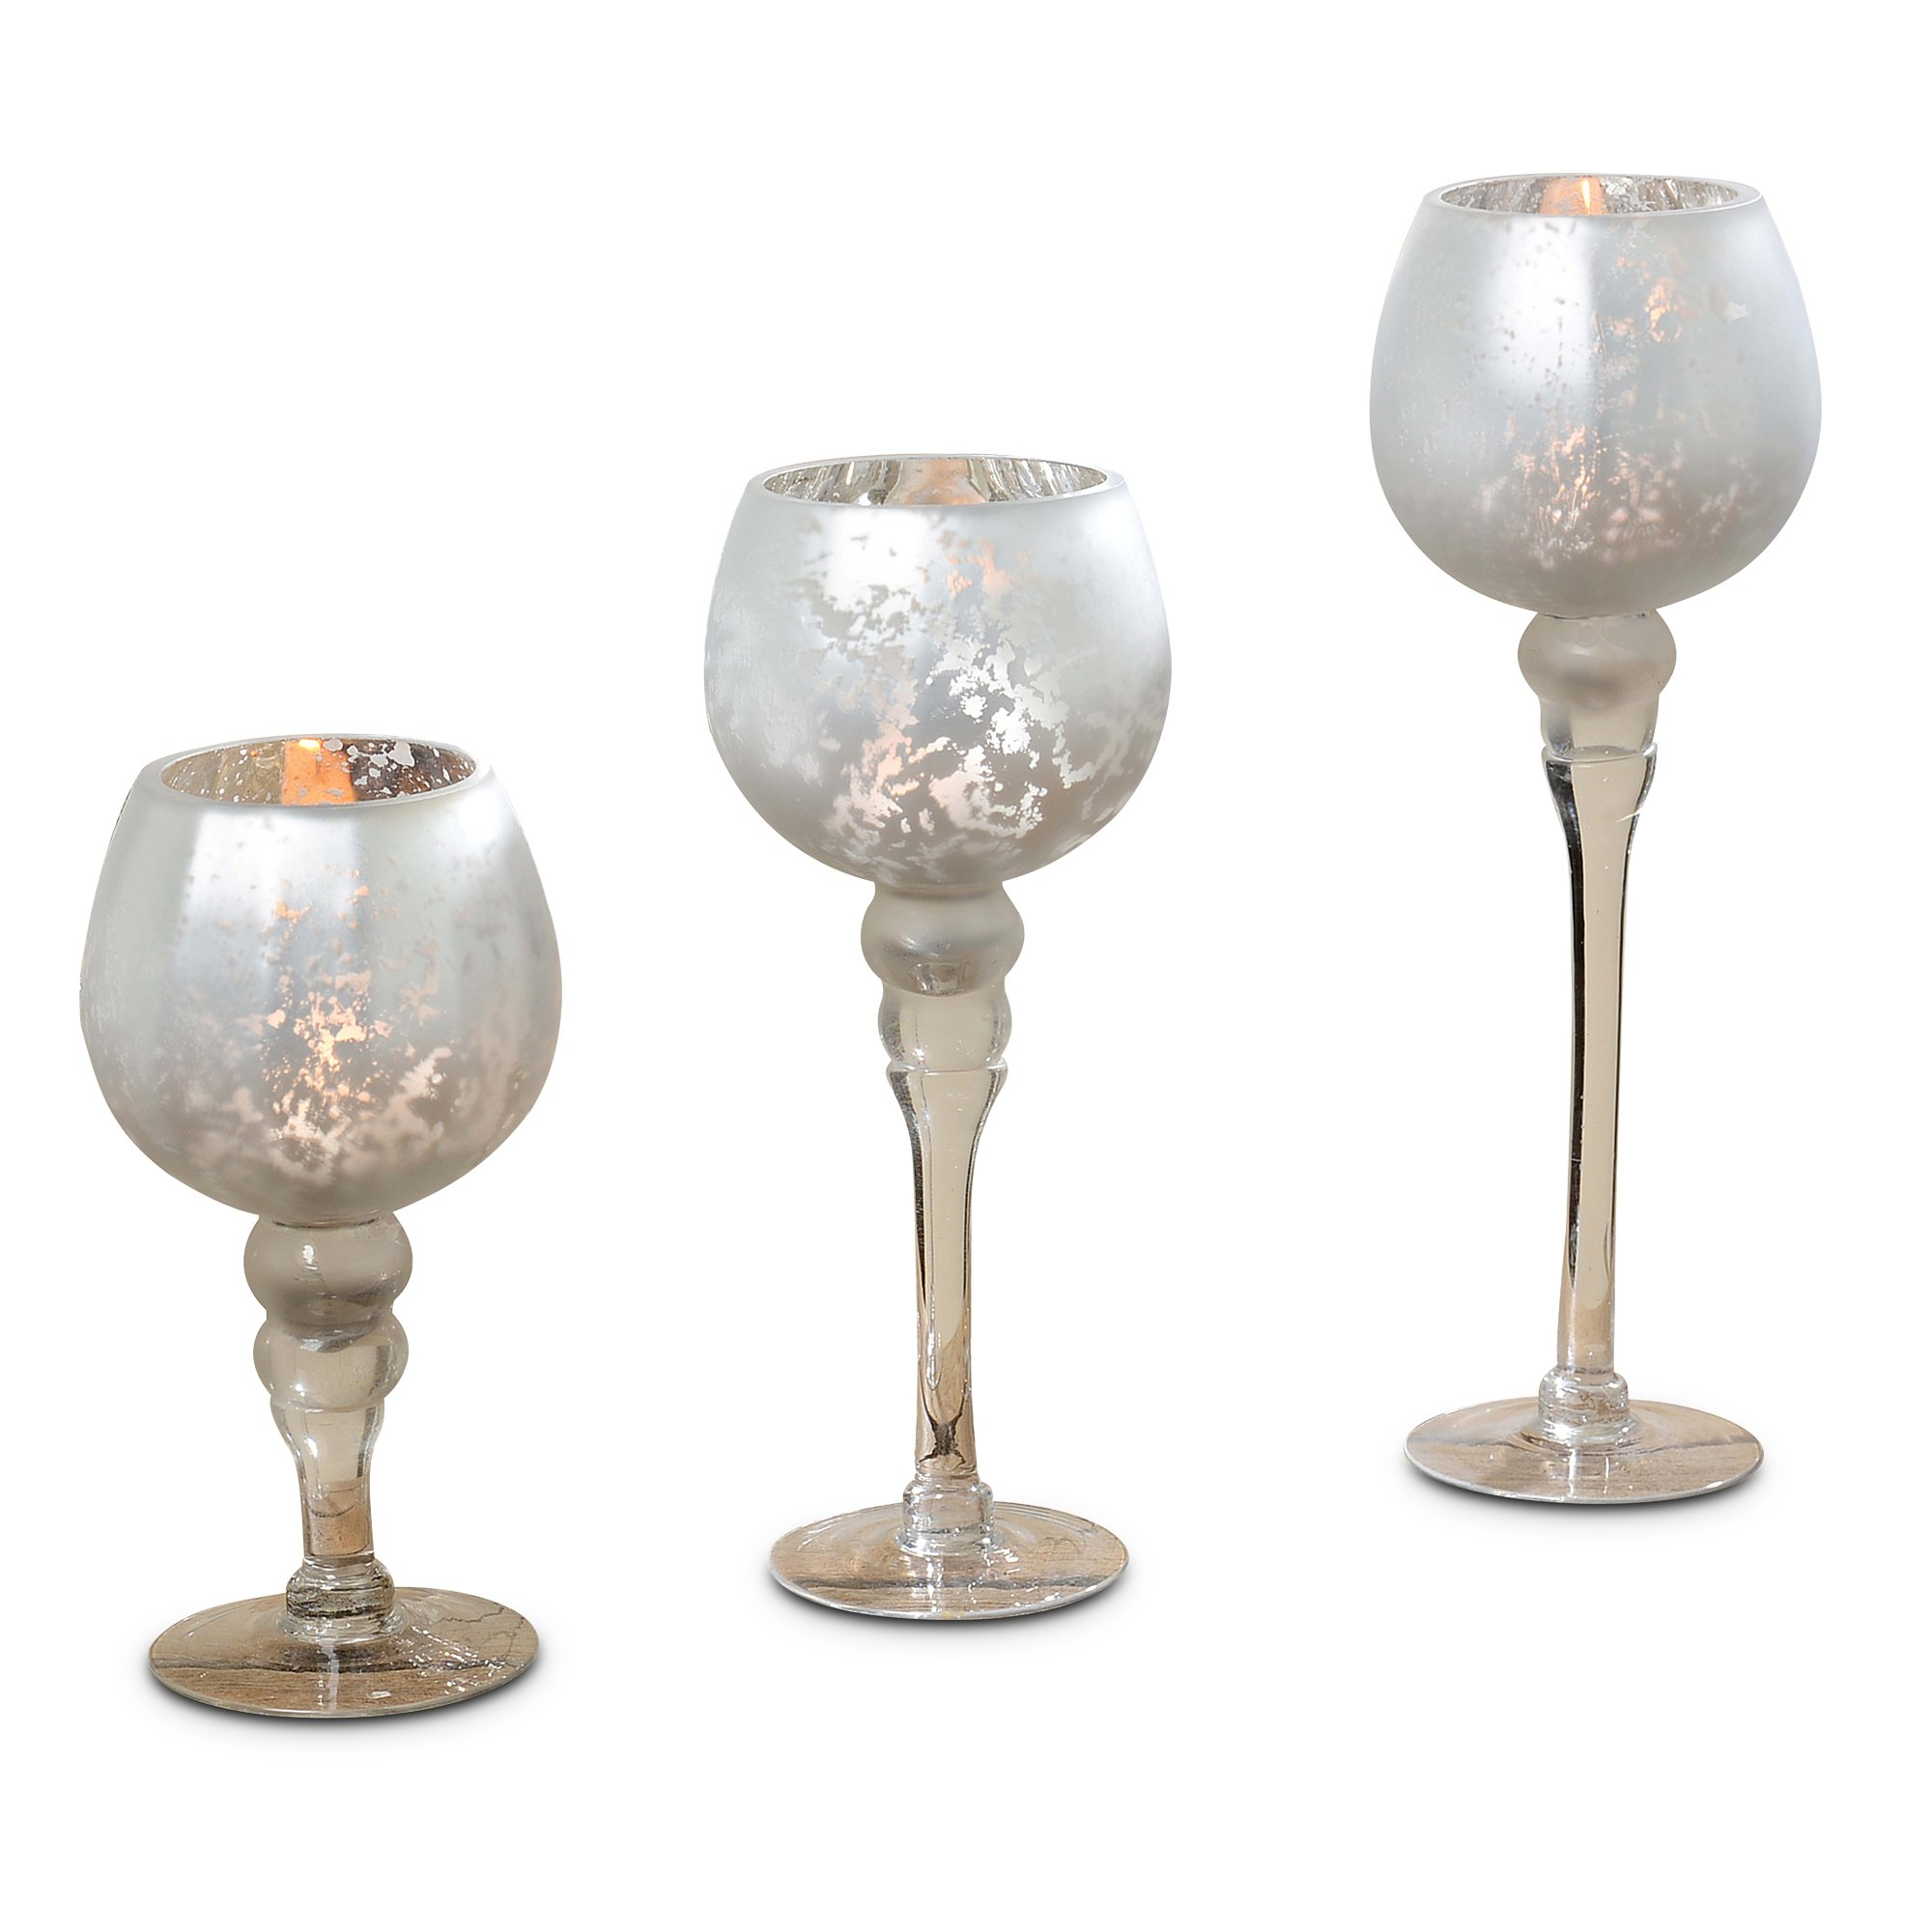 The Spectacular Cape Cod Long Stem Candle Holders, Set of 3, Silver Mercury Glass, Rippled, Proportioned at 11 3/4, 9 3/4, and 7 Inches Tall, For Tealight or Votive or Ball Candles, By WHW by Whole House Worlds